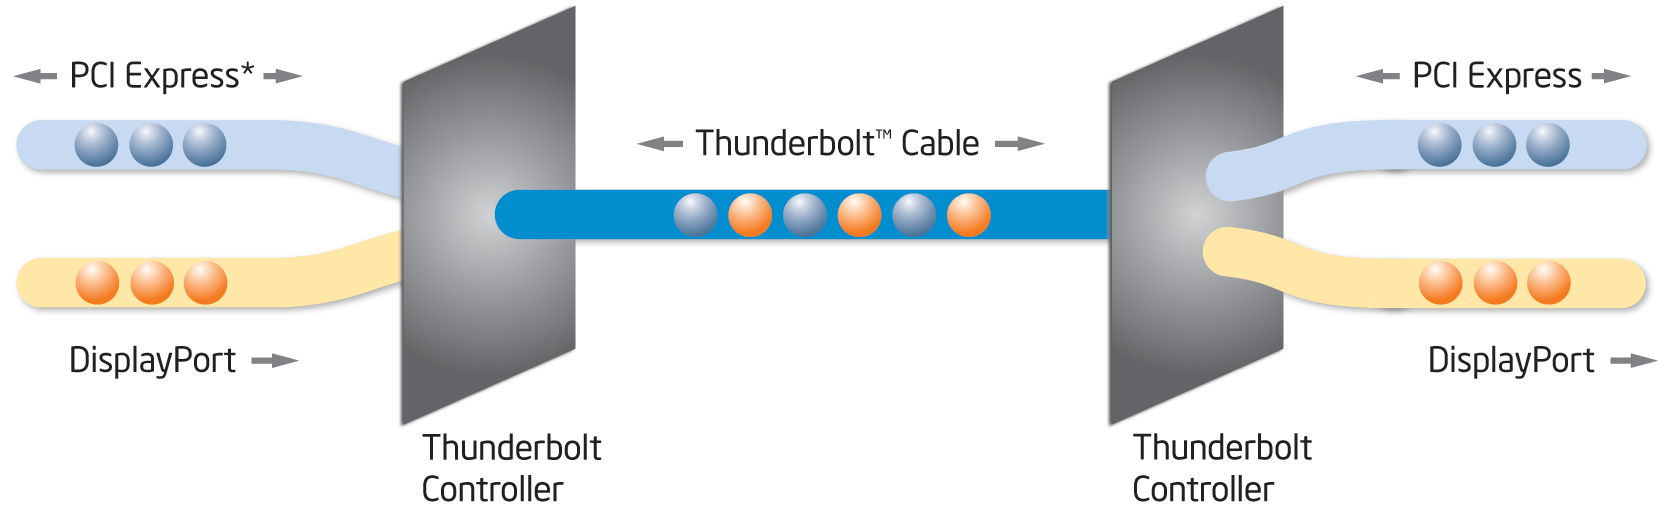 Thunderbolt_Technology.jpg